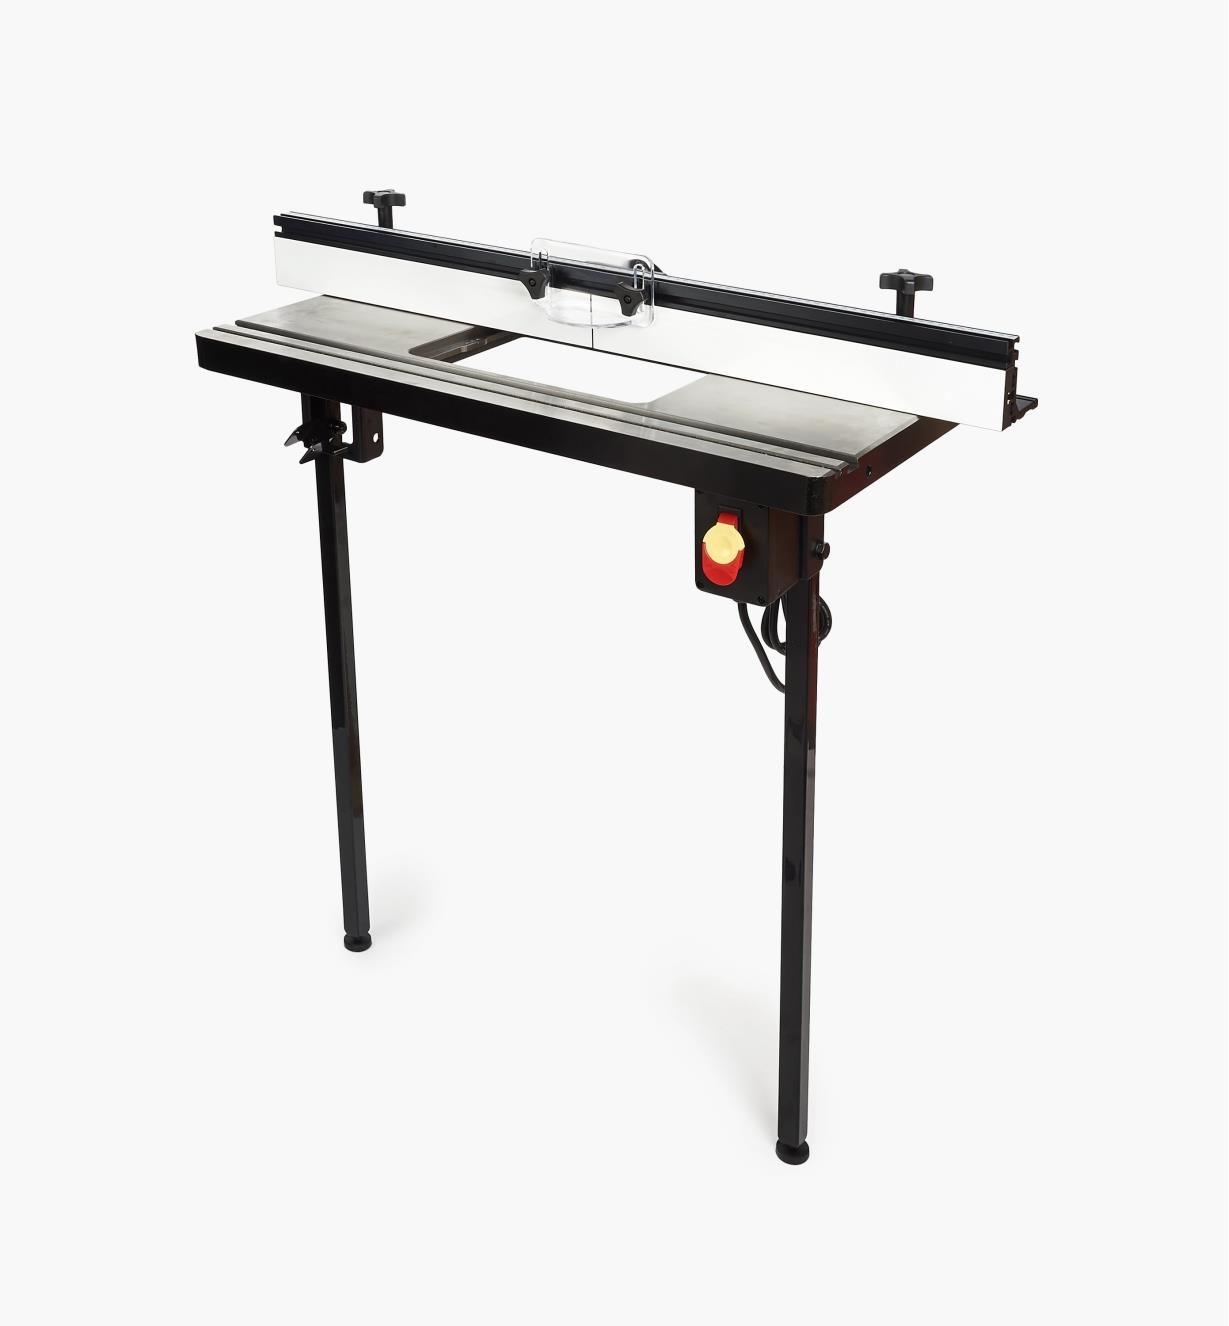 95T2550 - In-Line Router Table for the SawStop Industrial Cabinet Saw